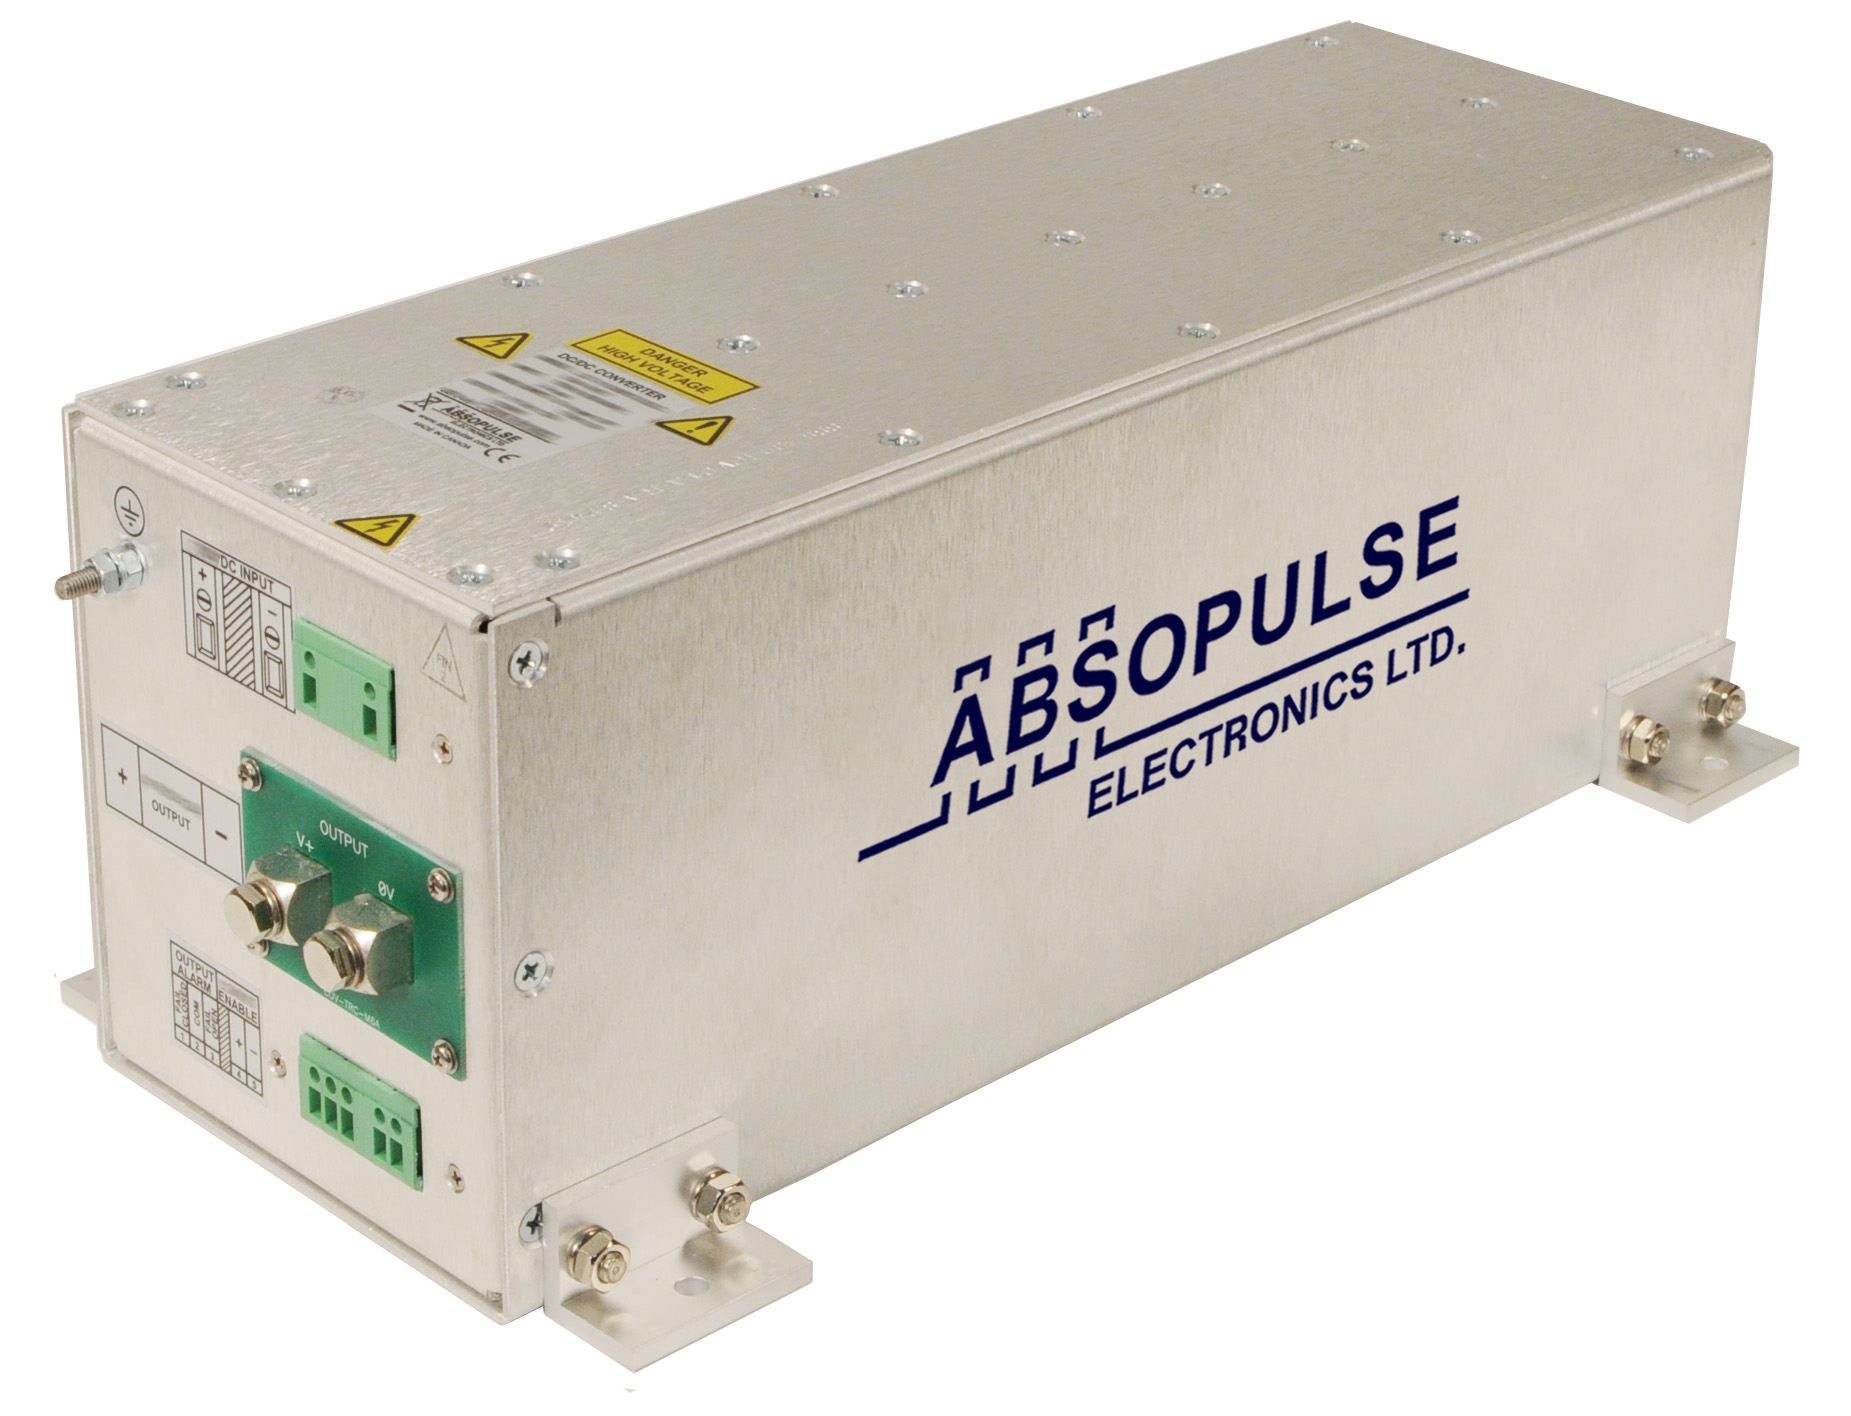 High-Input-Voltage DC-DC Converter Delivers up to 2000W